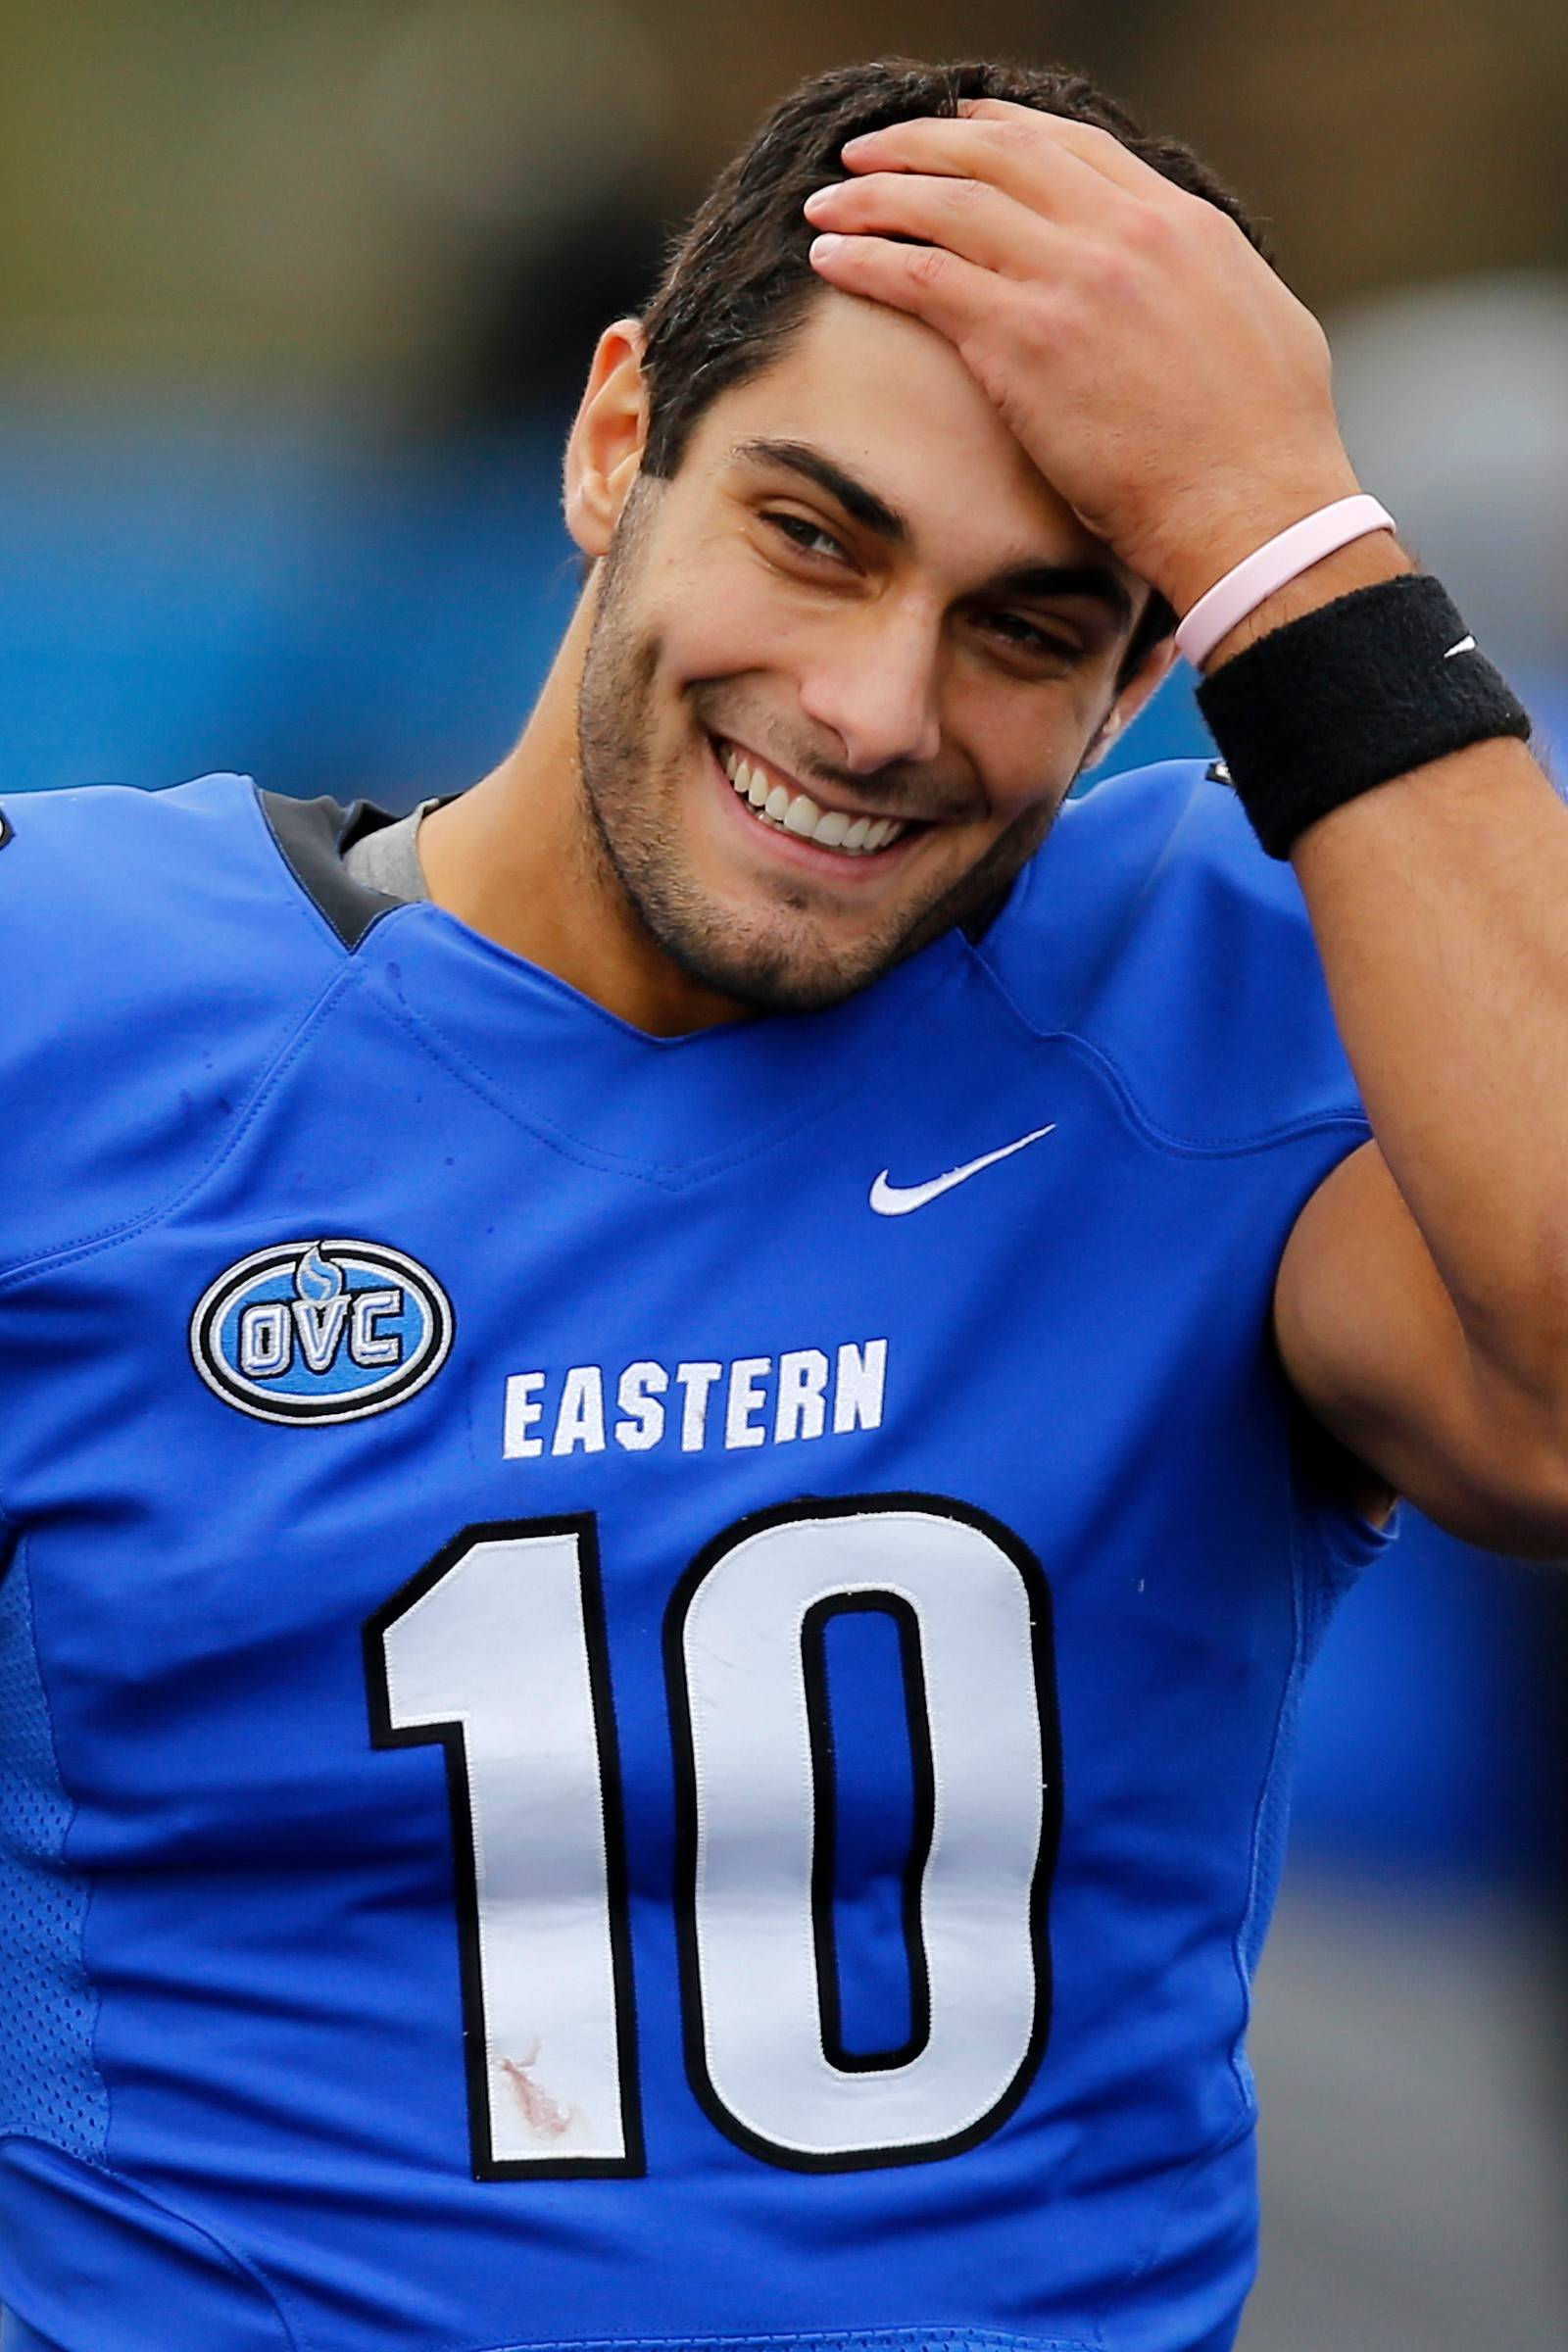 Quarterback Jimmy Garoppolo, on the sideline during an Eastern Illinois game last season, was drafted by the New England Patriots in the second round.